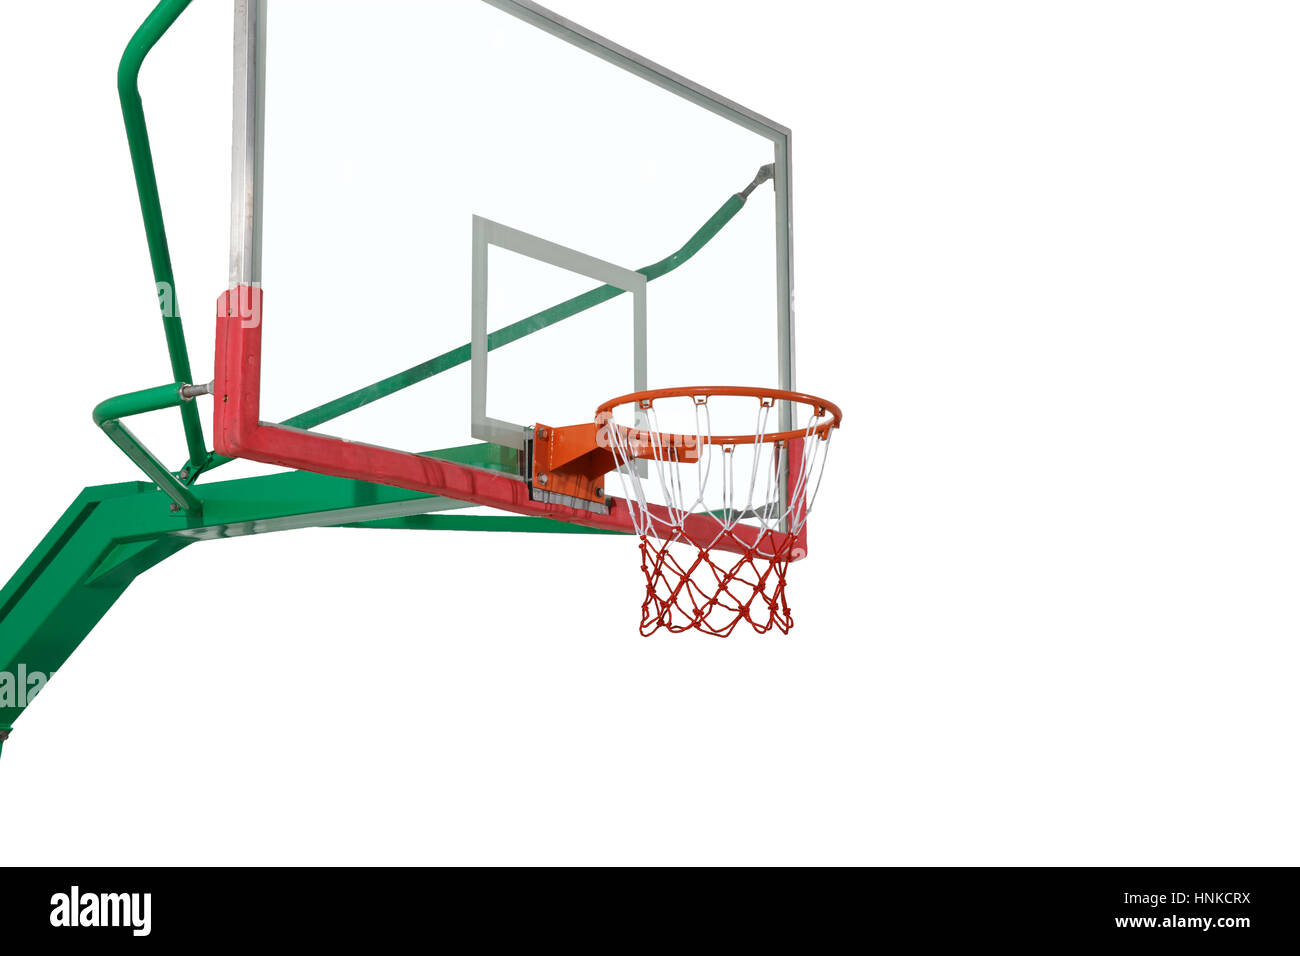 Basketball frame Stock Photo: 133807518 - Alamy